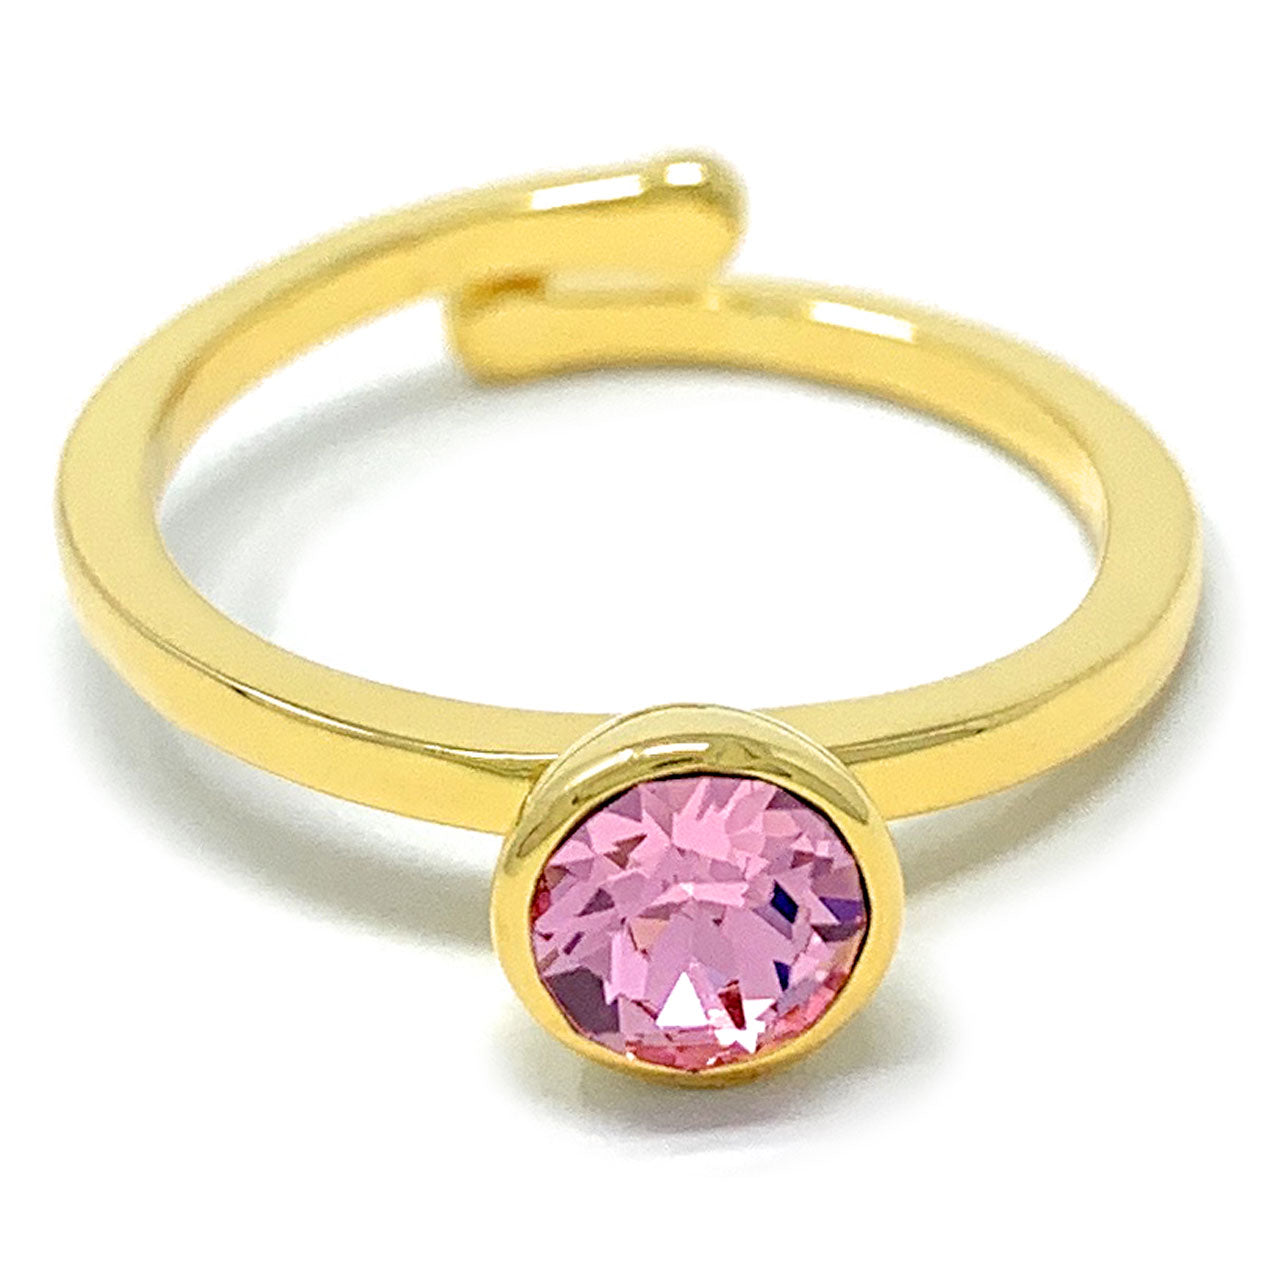 Harley Adjustable Ring with Pink Light Rose Round Crystals from Swarovski Gold Plated - Ed Heart